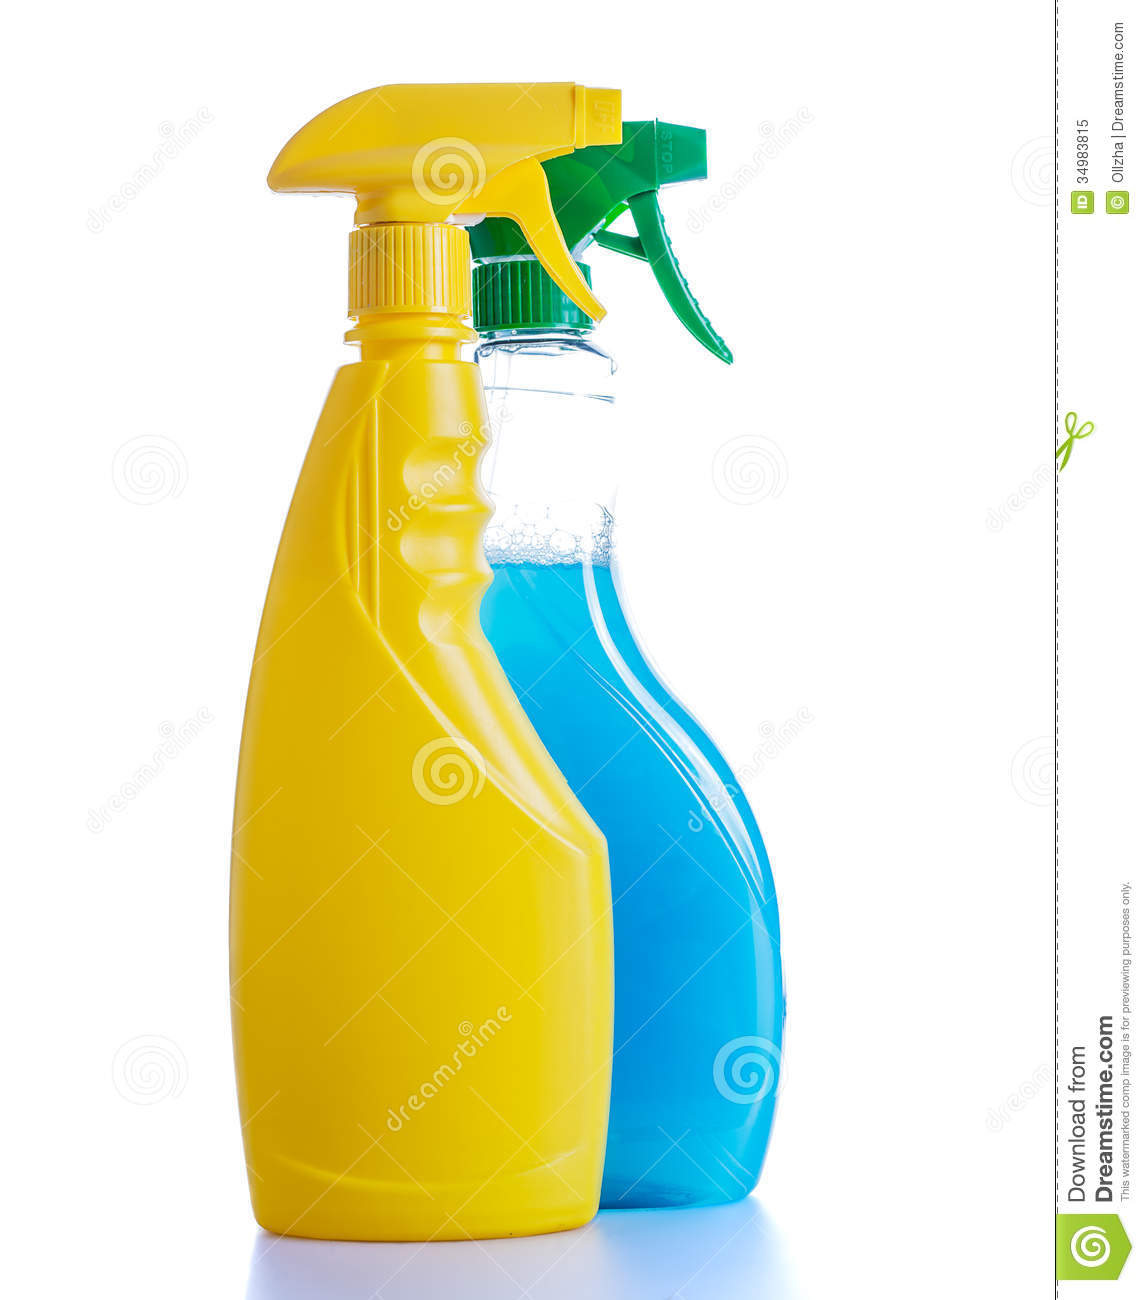 Cleaning bottles clip art - photo#14